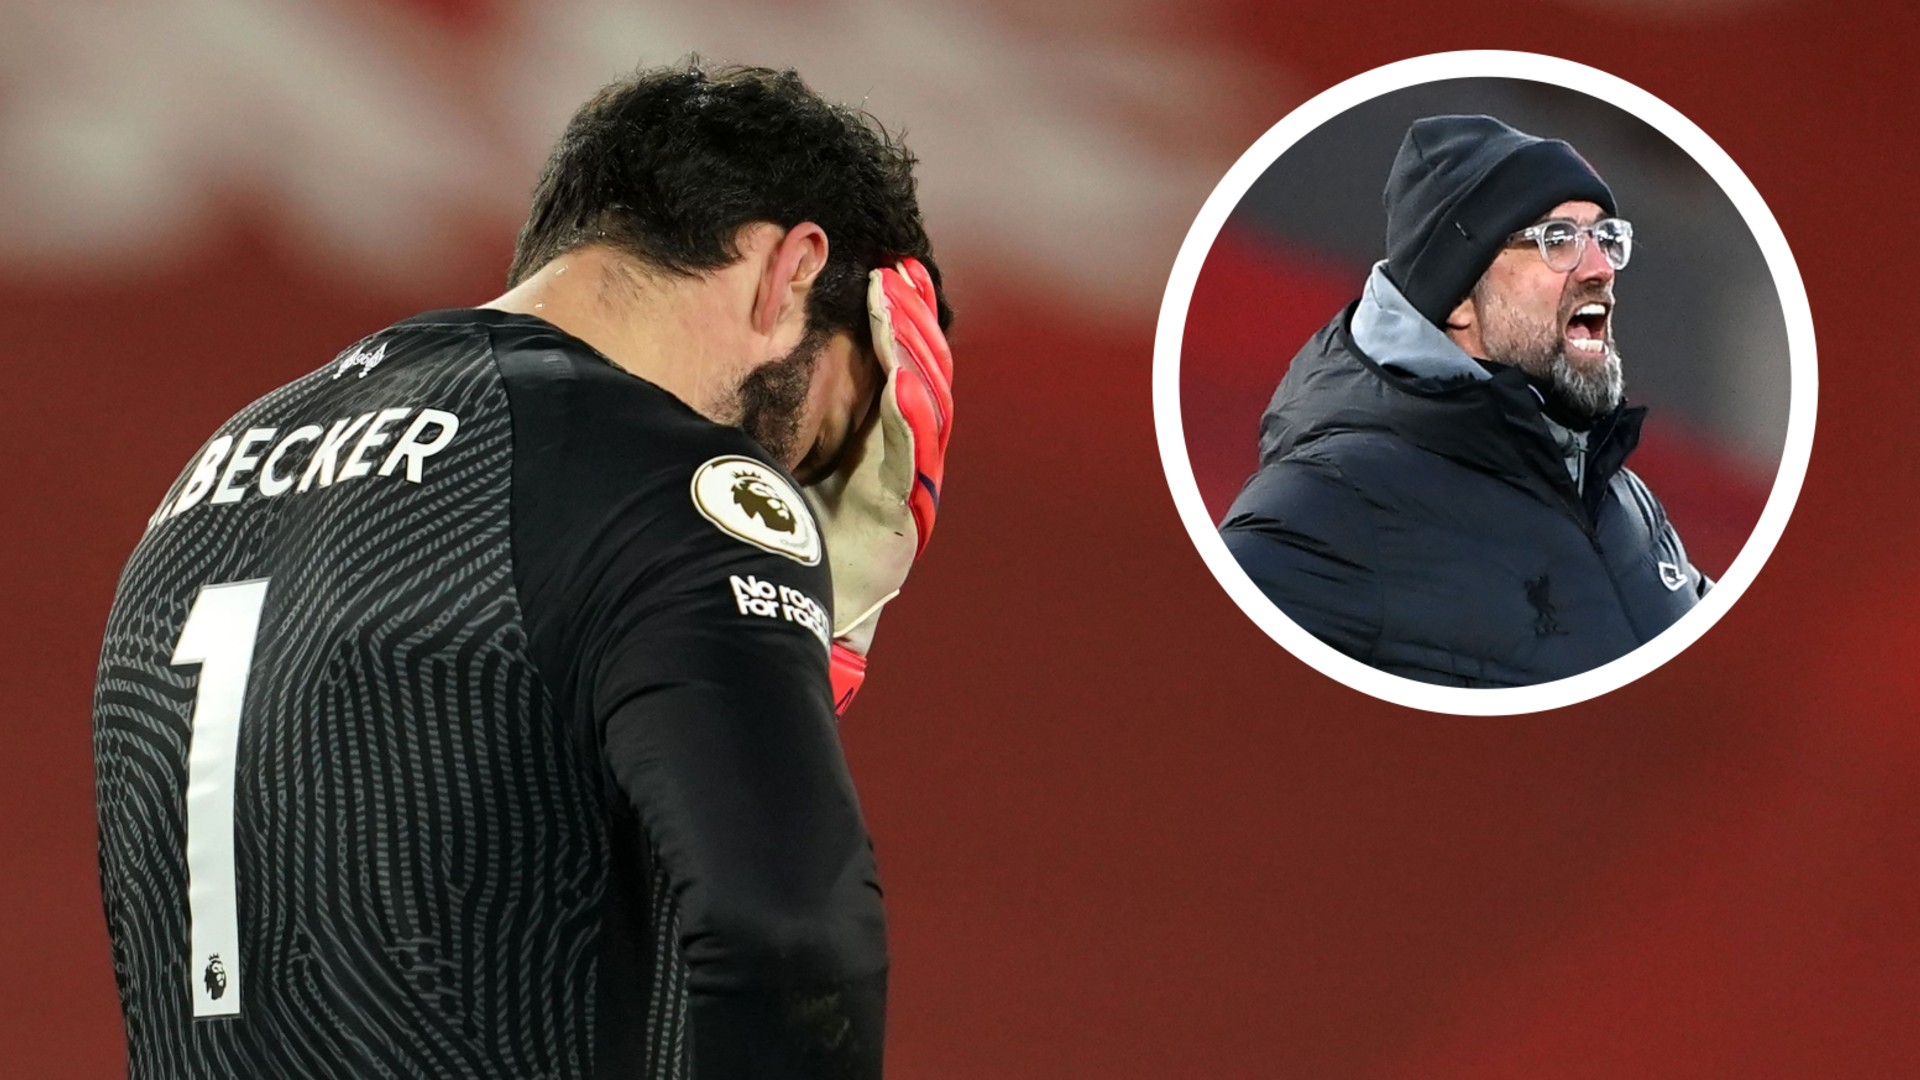 'Hit the stands' - Klopp reveals what he told Alisson after Liverpool goalkeeper's Manchester City nightmare